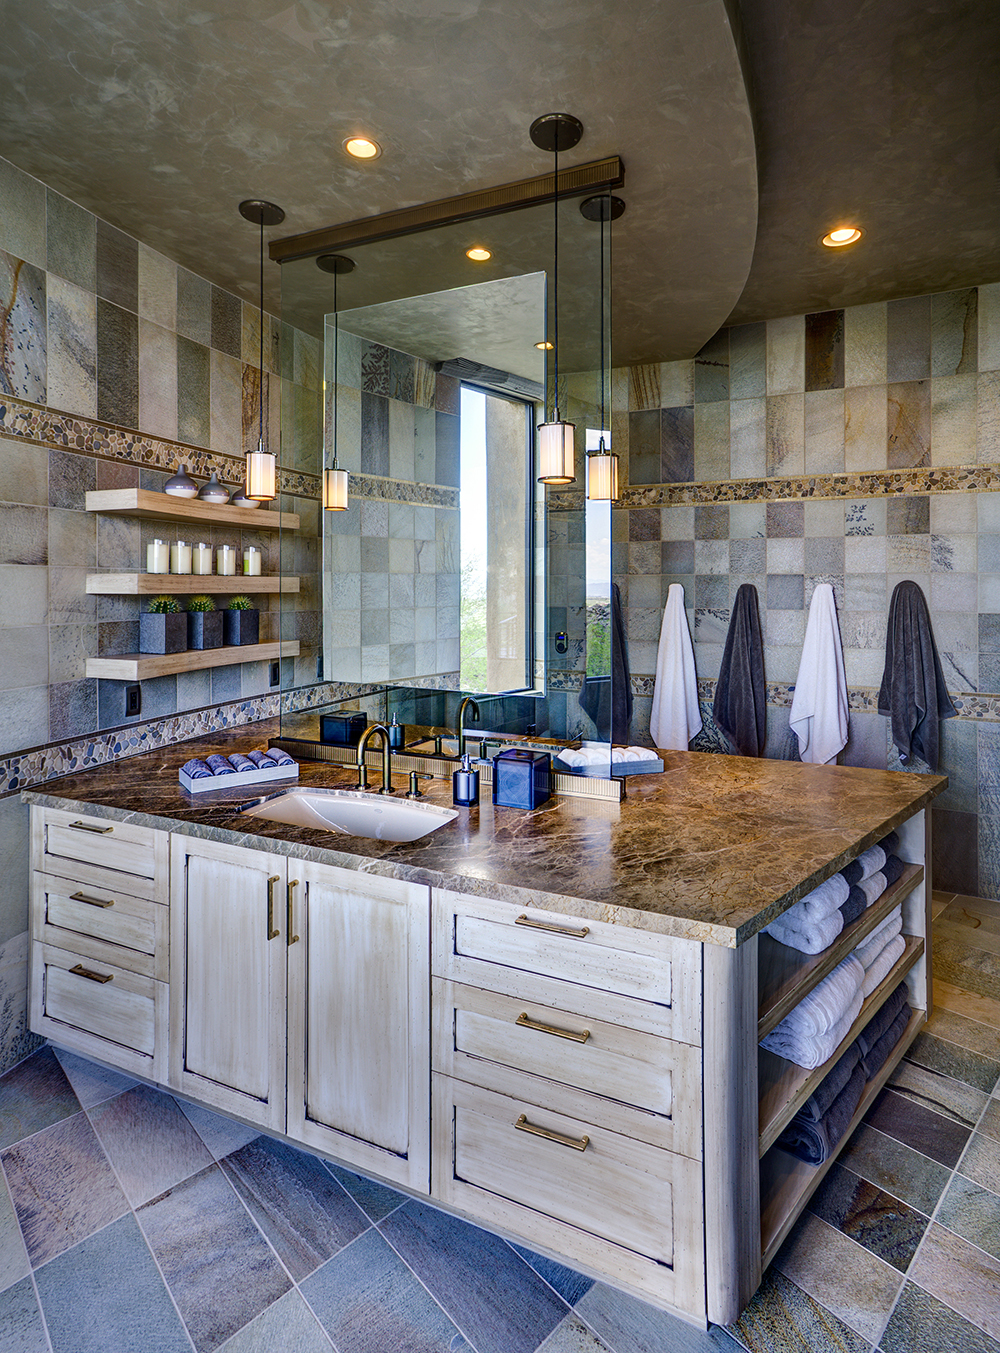 Installing back to back vanities with a suspended mirror partition sets the master bath apart. by Lori Carroll & Associates